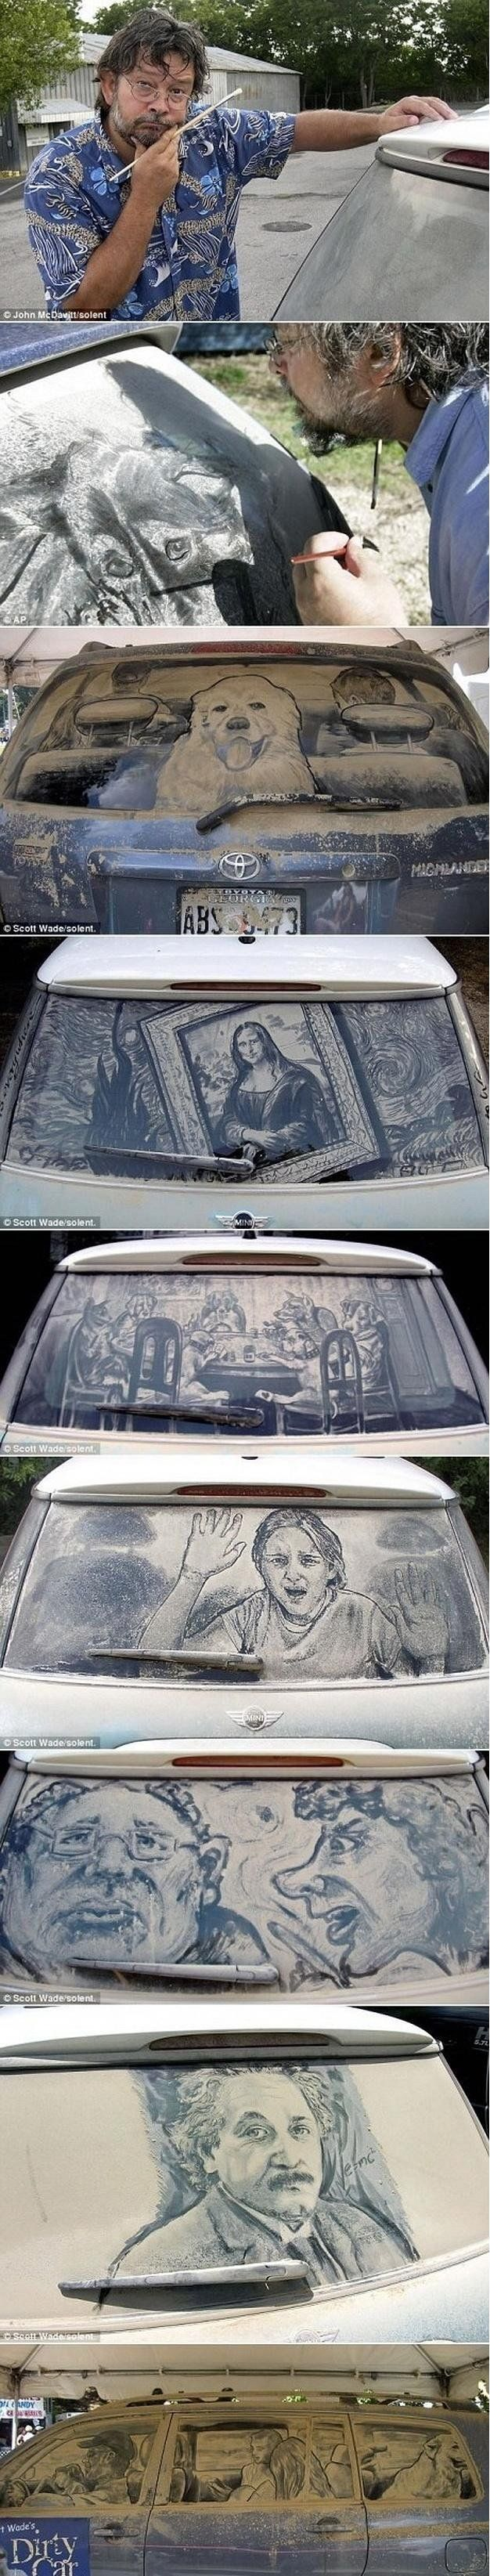 I think I will do this to my car when it gets dirty enough